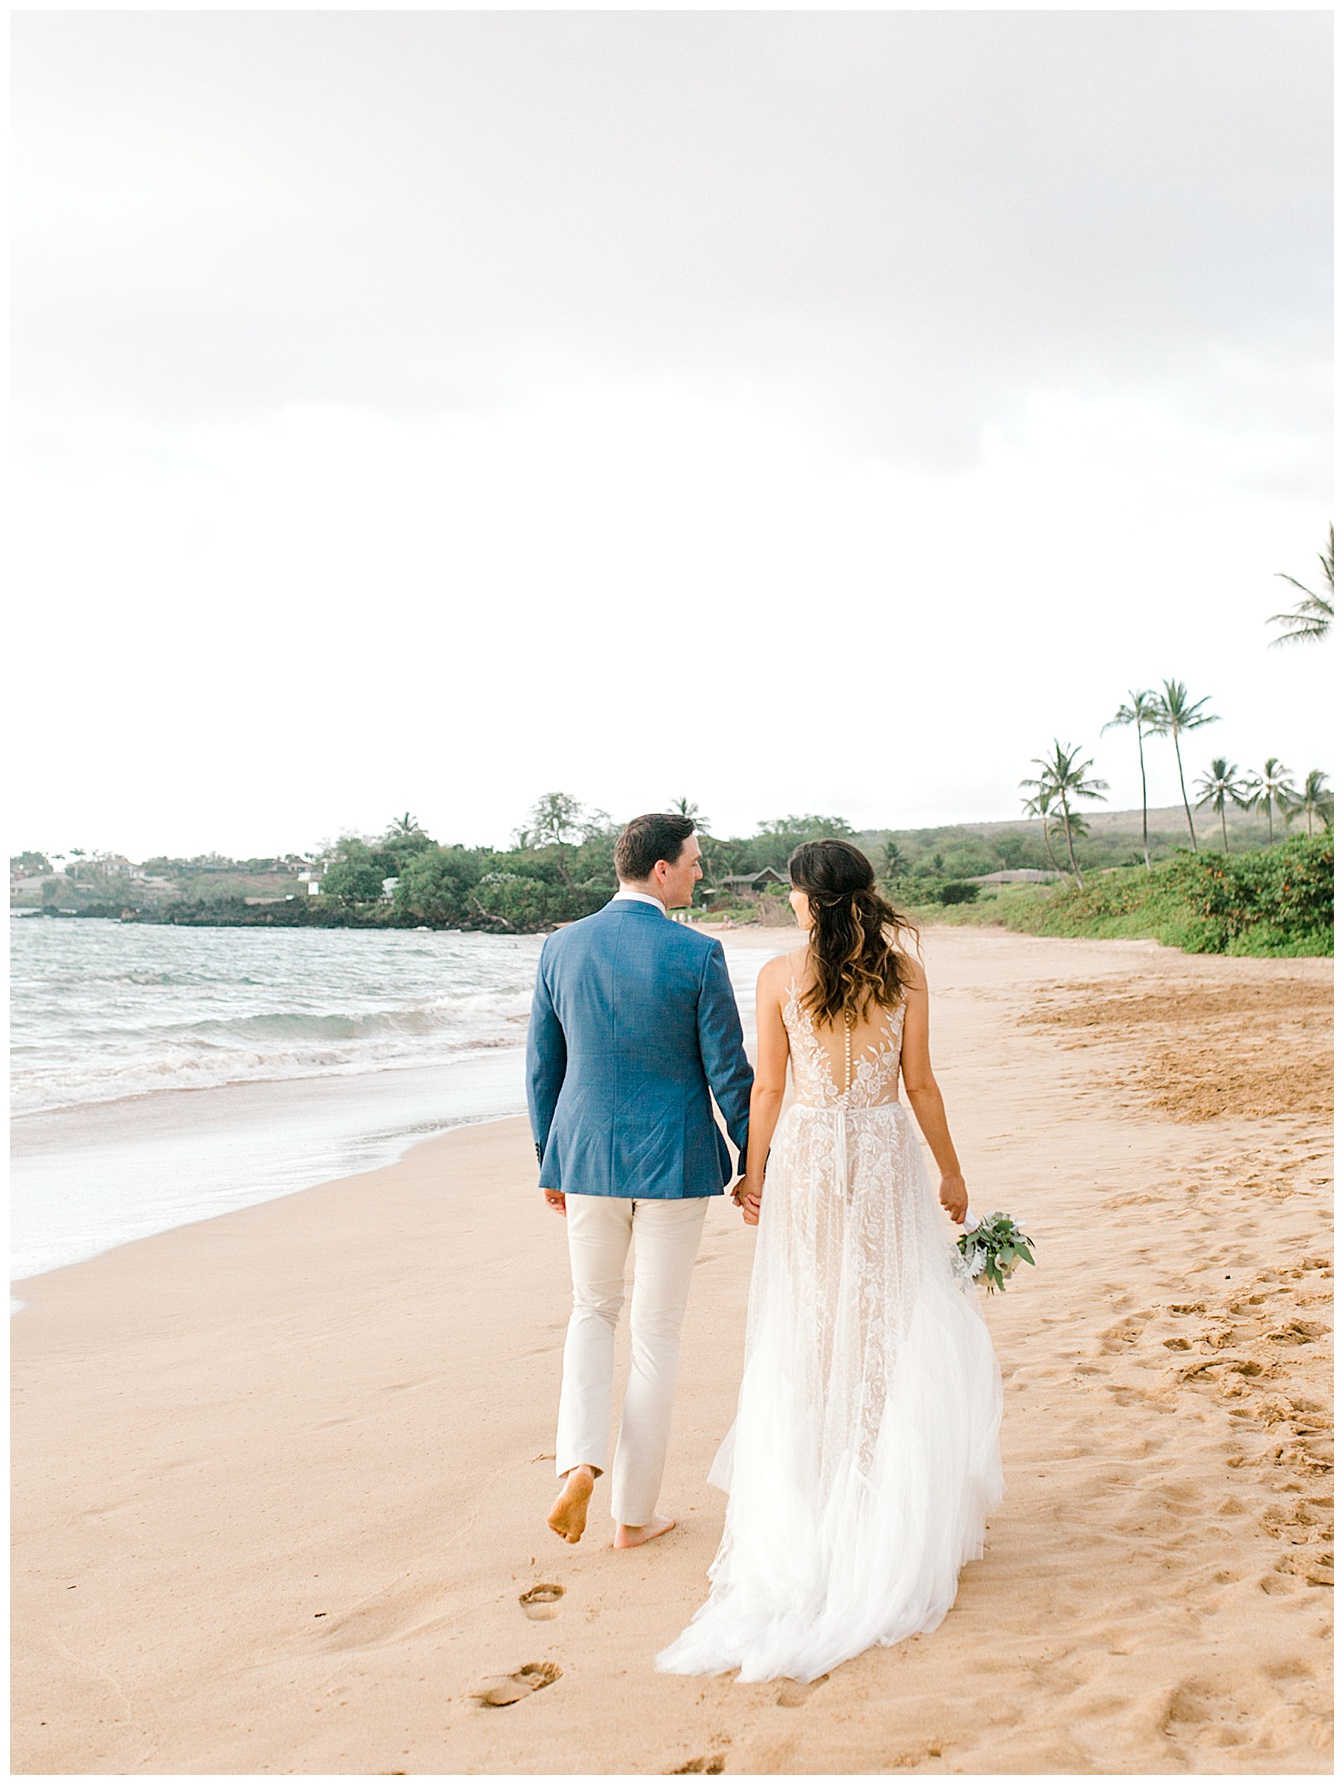 Makena-Cove-Maui-Elopement_0025.jpg